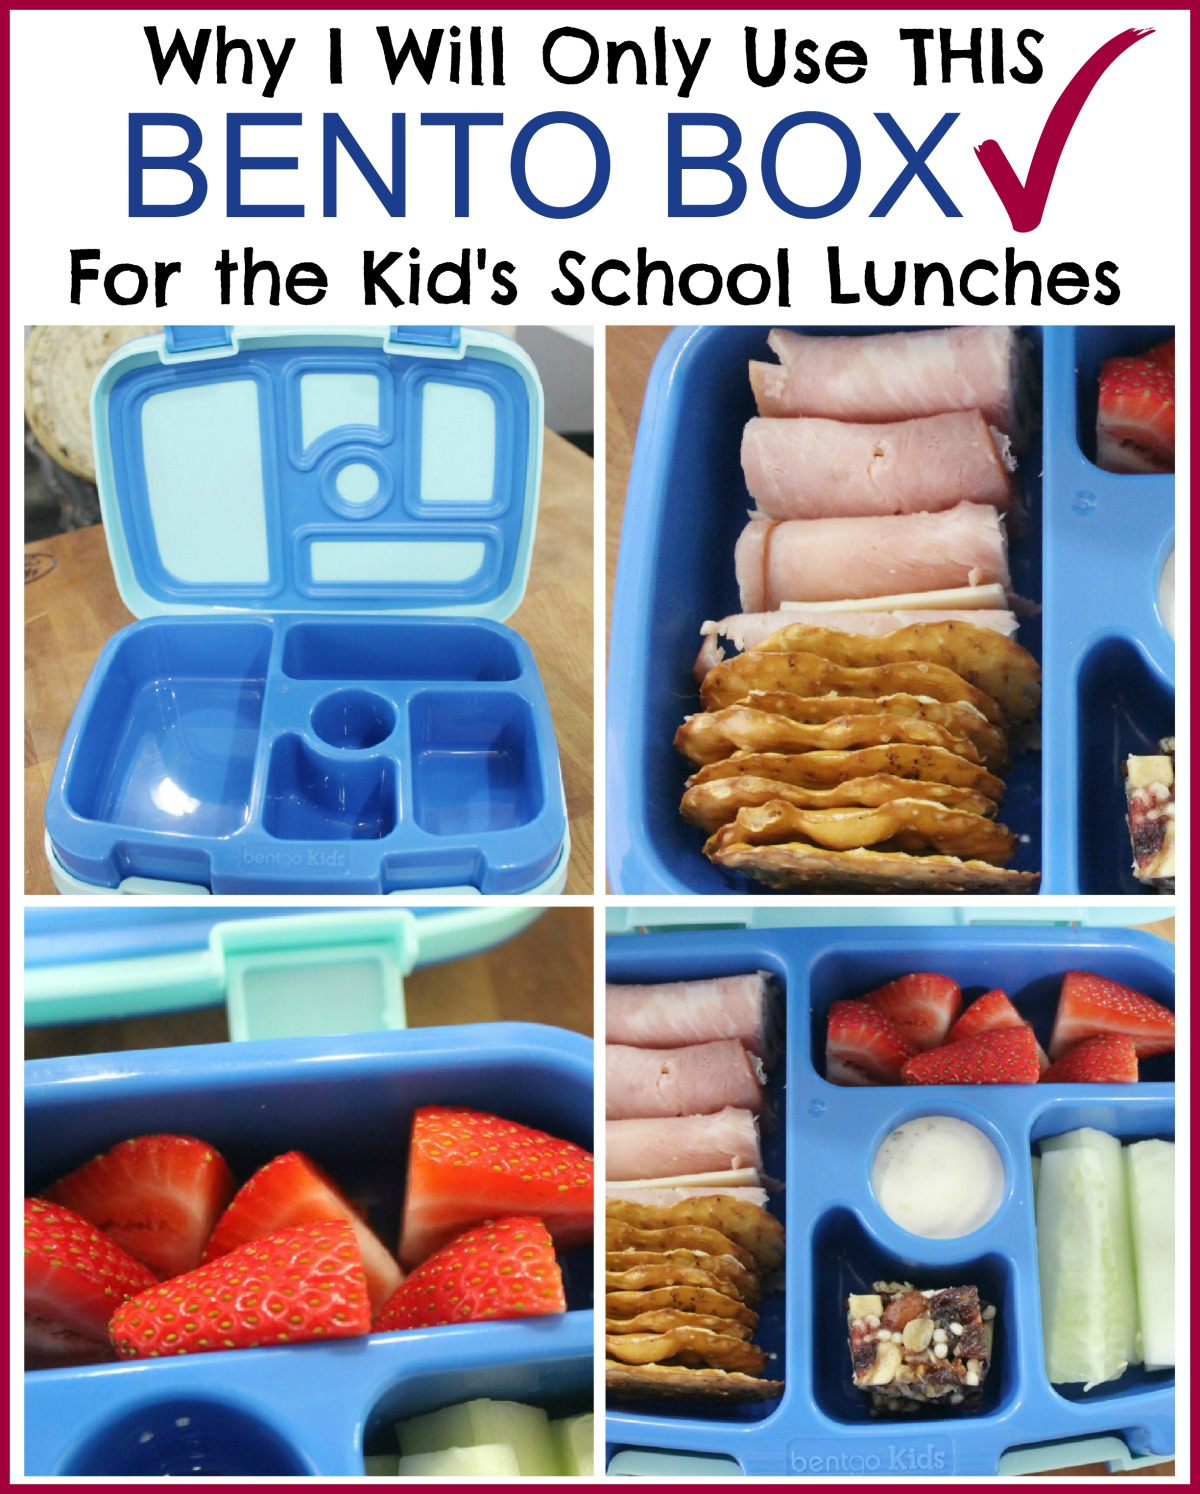 Using Bento Boxes for School Lunches | The Everyday Home